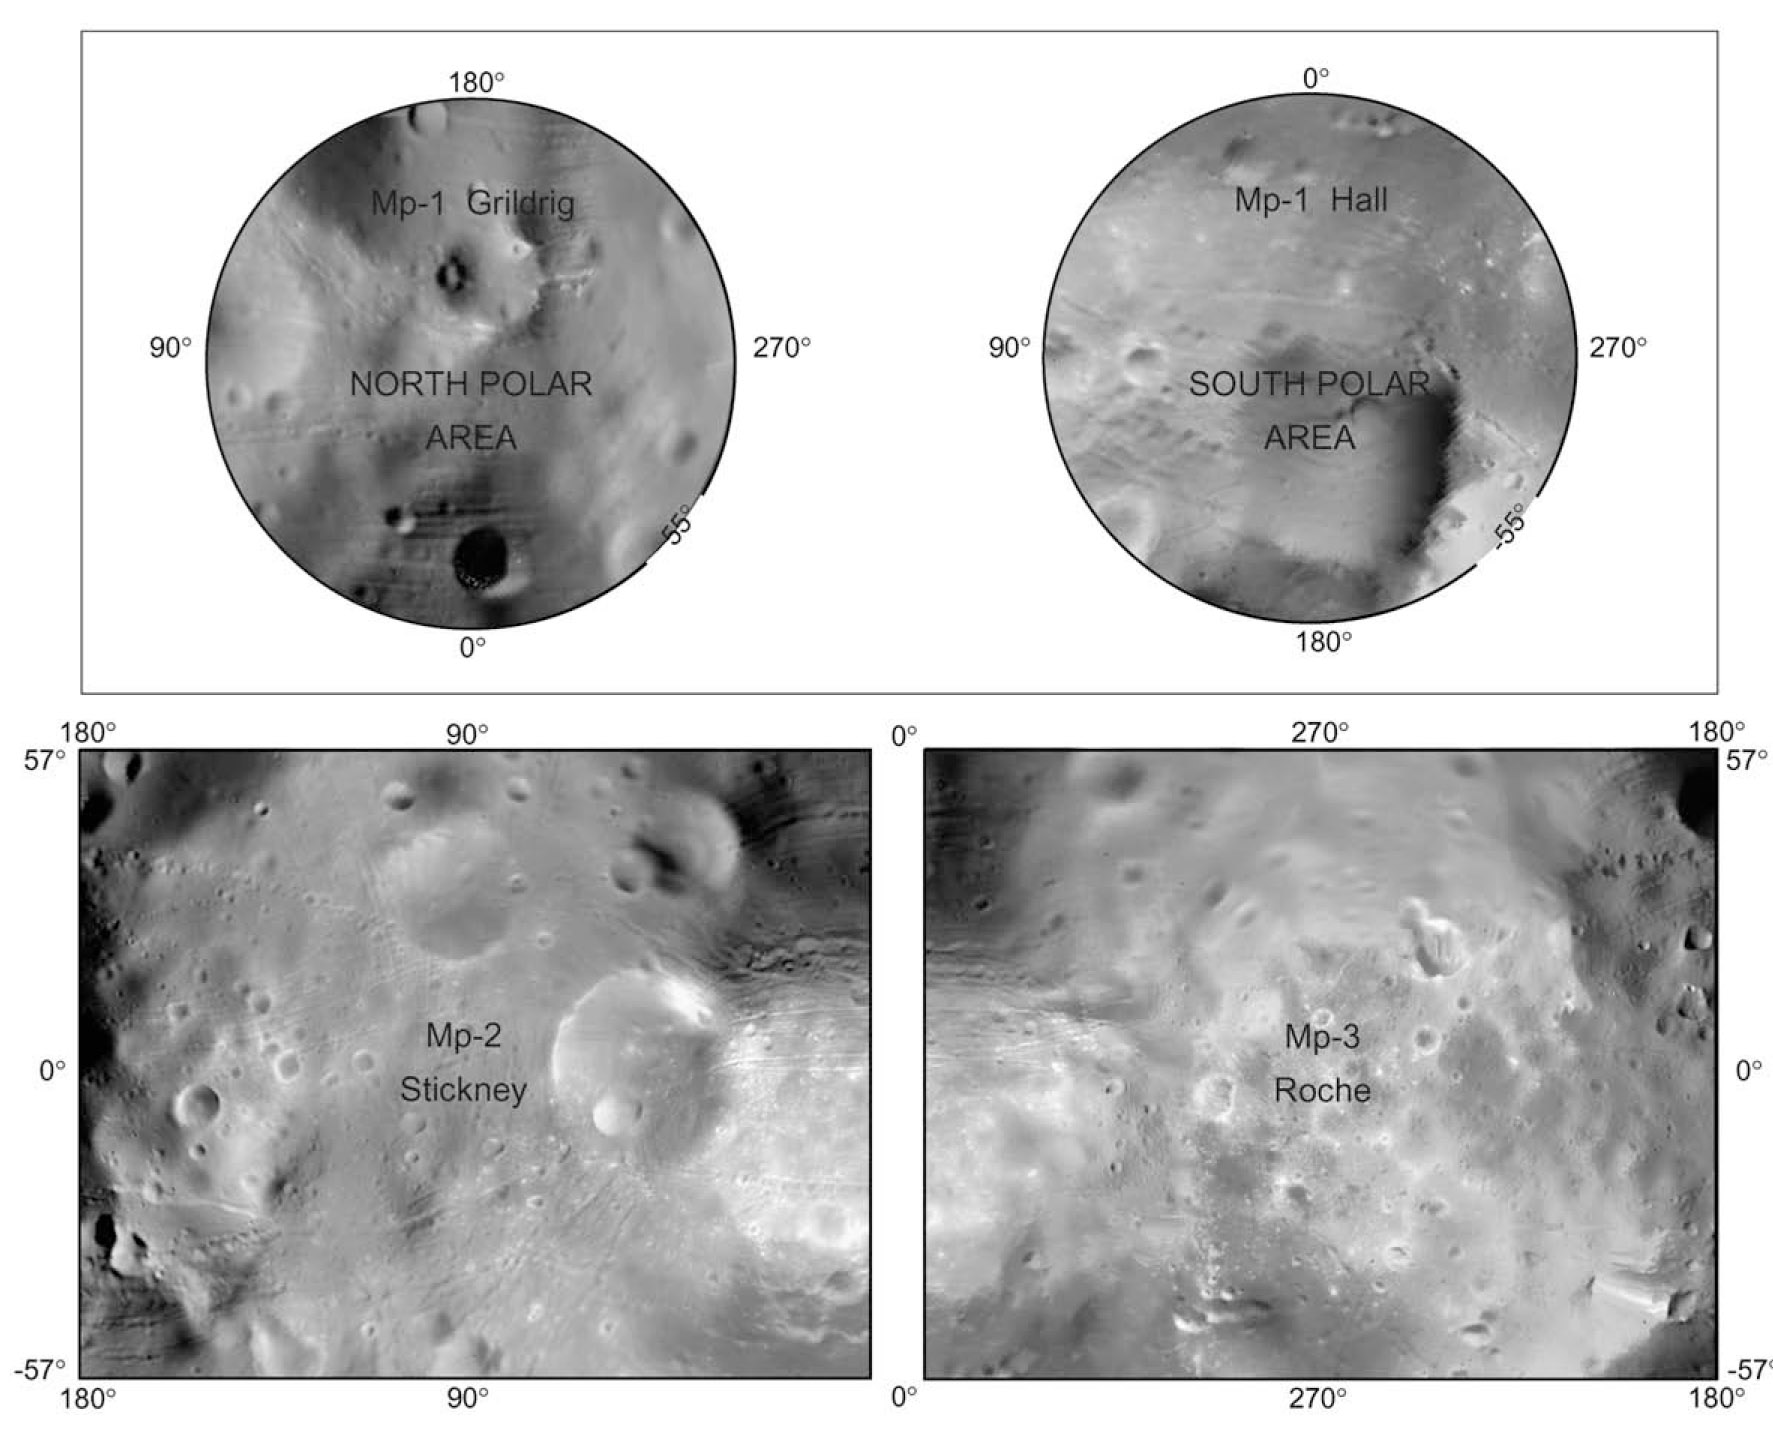 A new topographic image atlas of Phobos